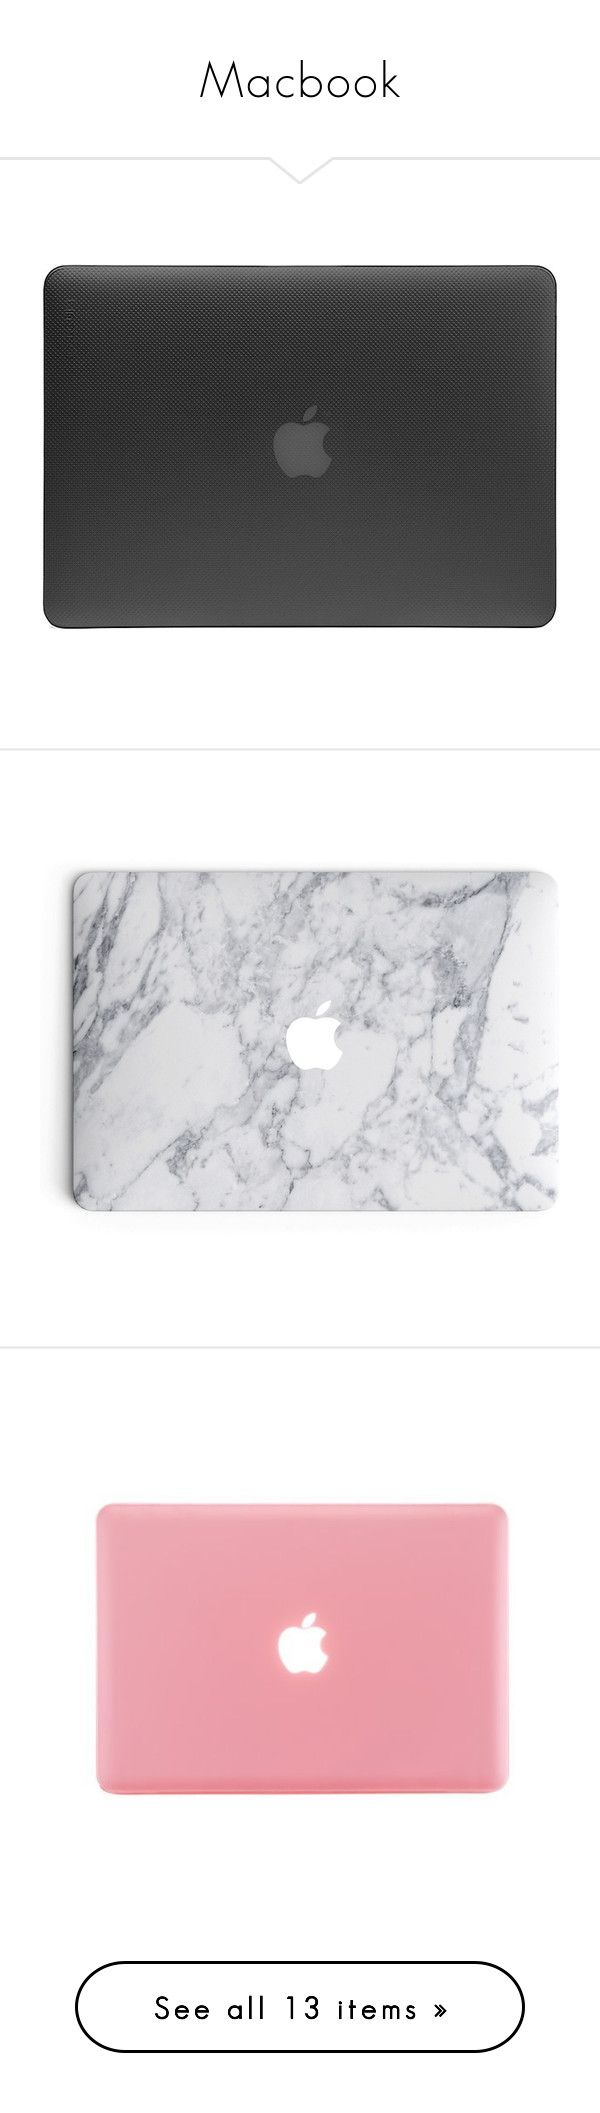 """""""Macbook"""" by andreiasilva07 ❤ liked on Polyvore featuring bags, fillers, electronics, tech, fillers - black, stuff, black, thermal bags, incase bags and macbook bag"""